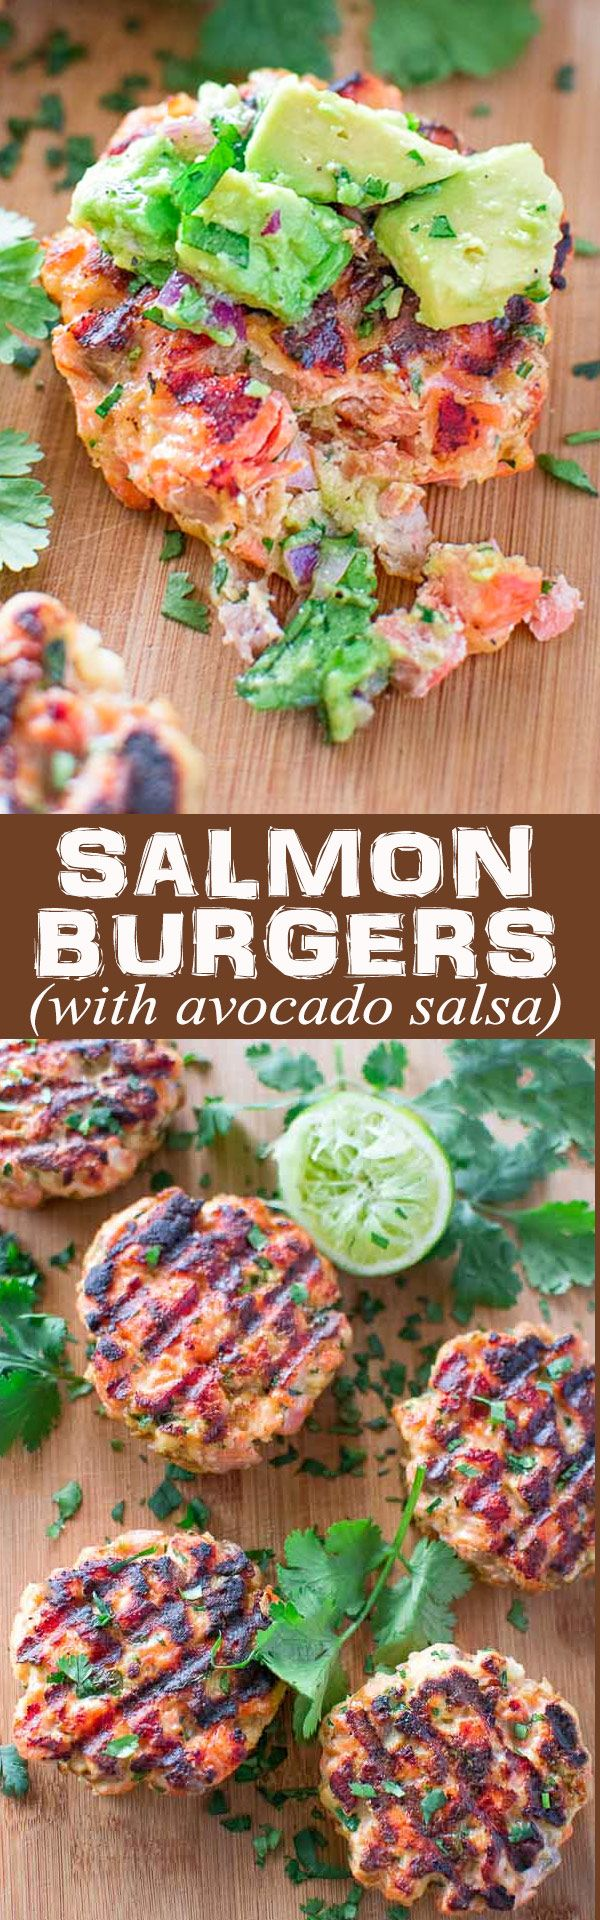 Tasty, healthy and easy to make this Salmon Burger recipe is unavoidable! Serving